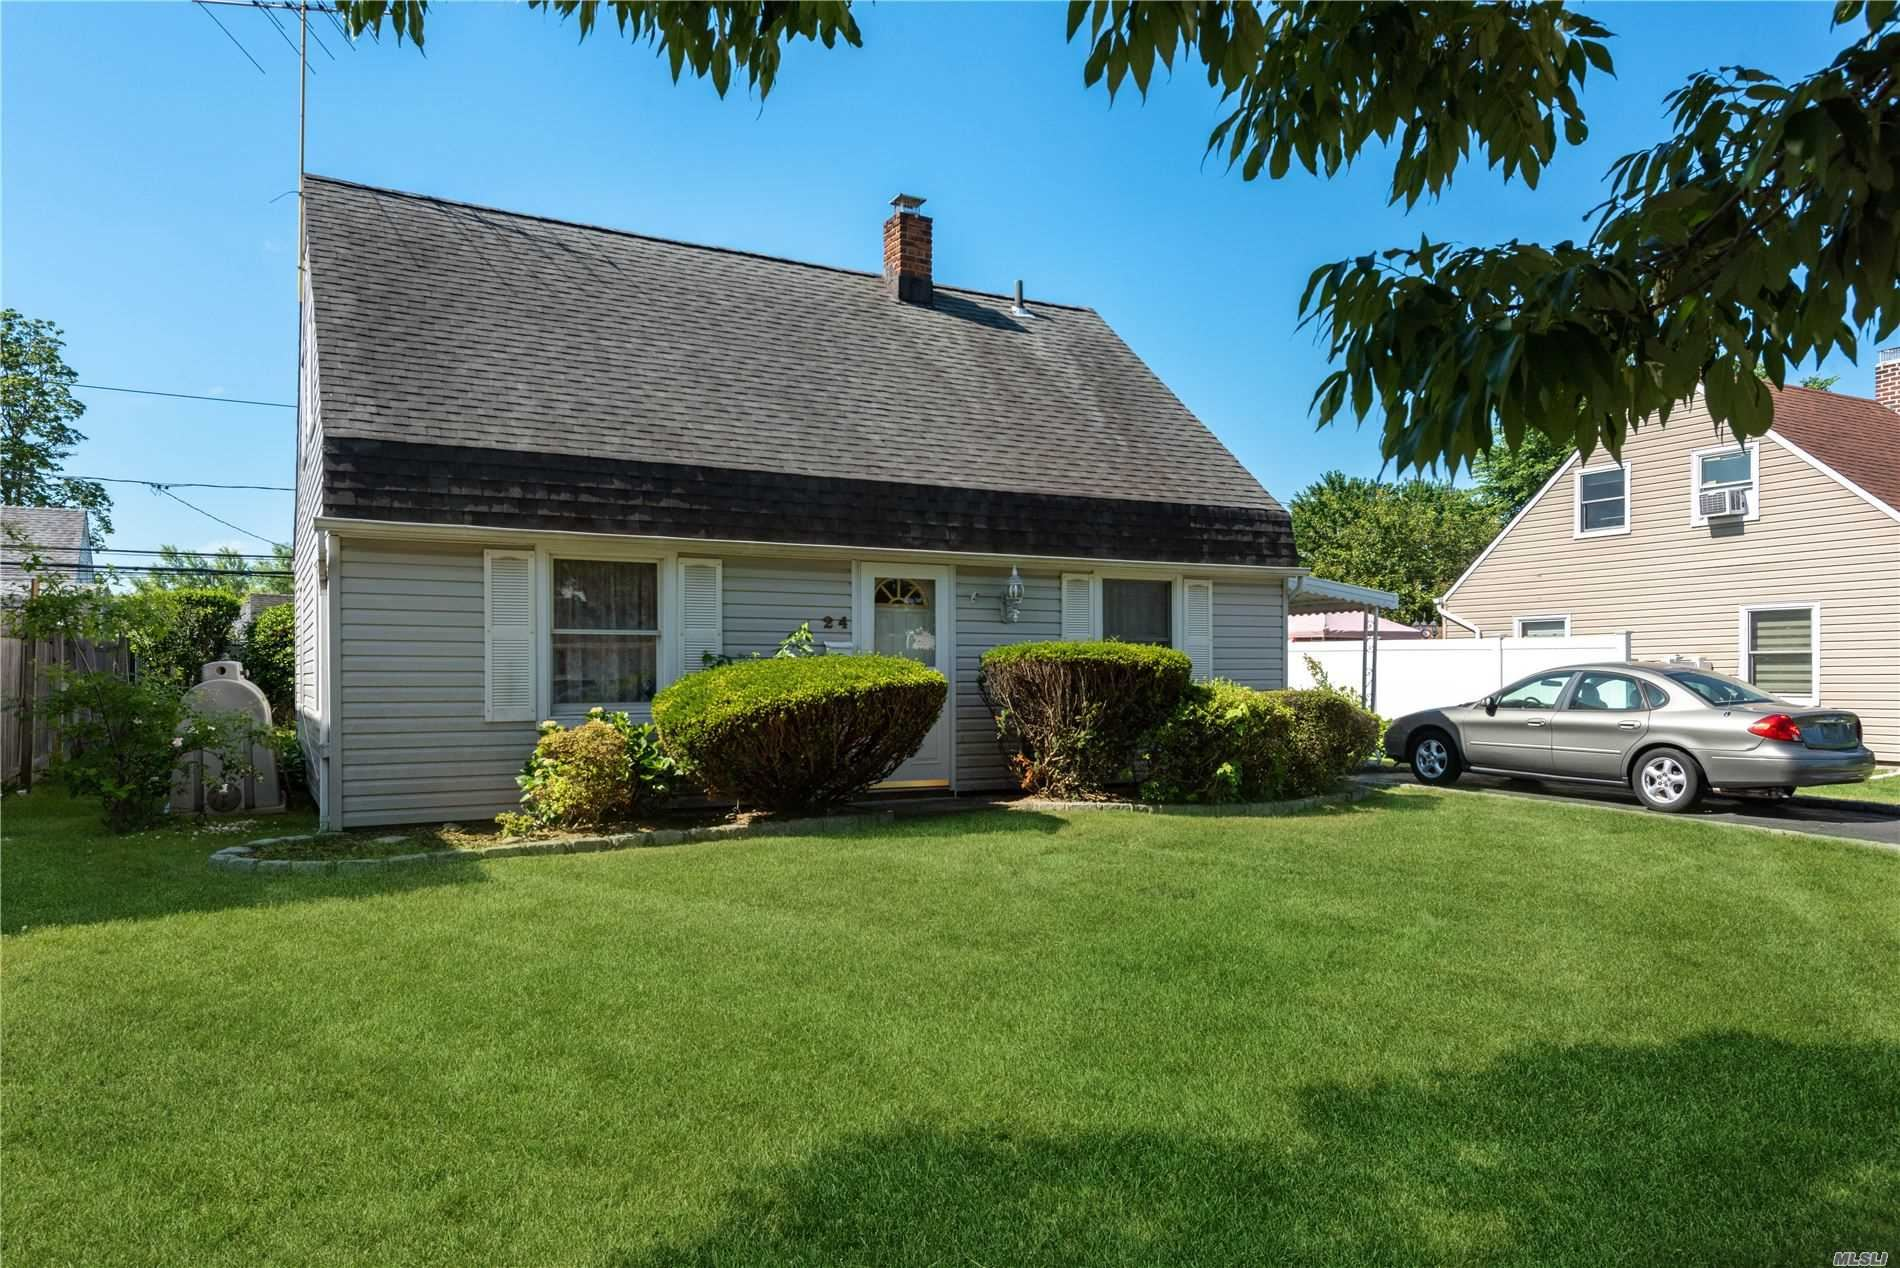 24 Rolling Lane, Levittown, NY 11756 - MLS#: 3225384